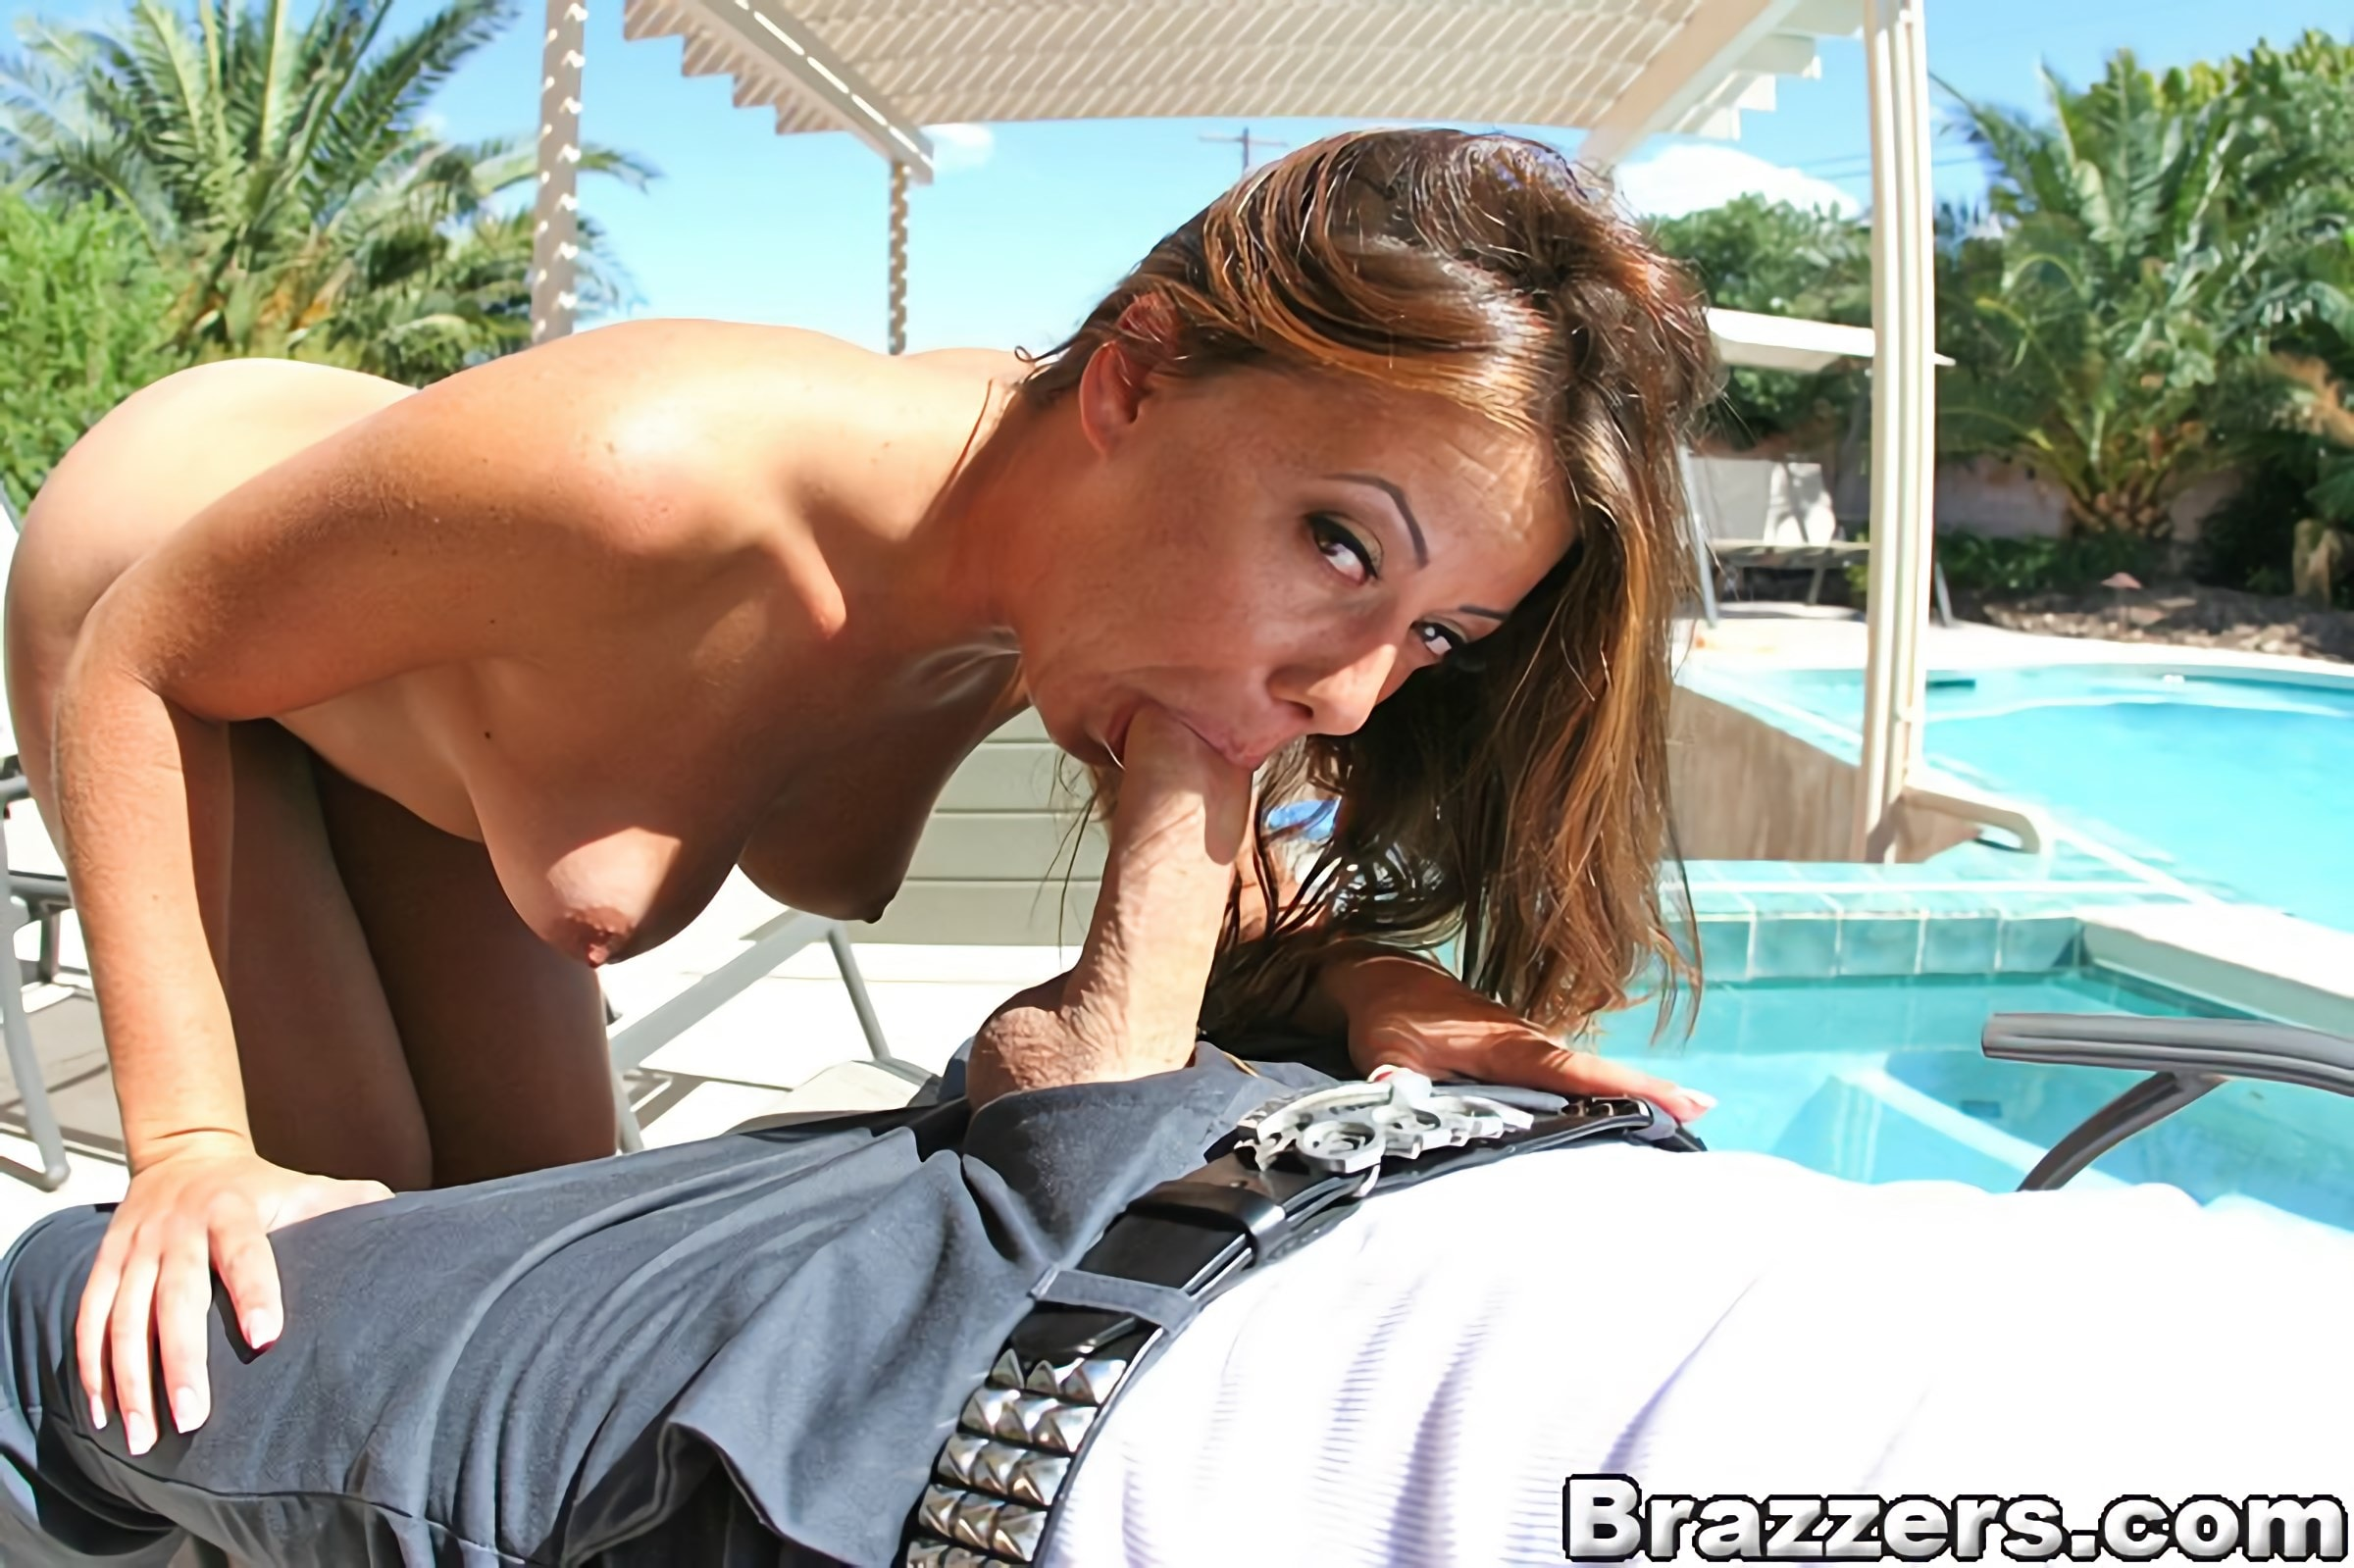 Brazzers 'Cock Block Sun Screen' starring Penny Flame (photo 7)